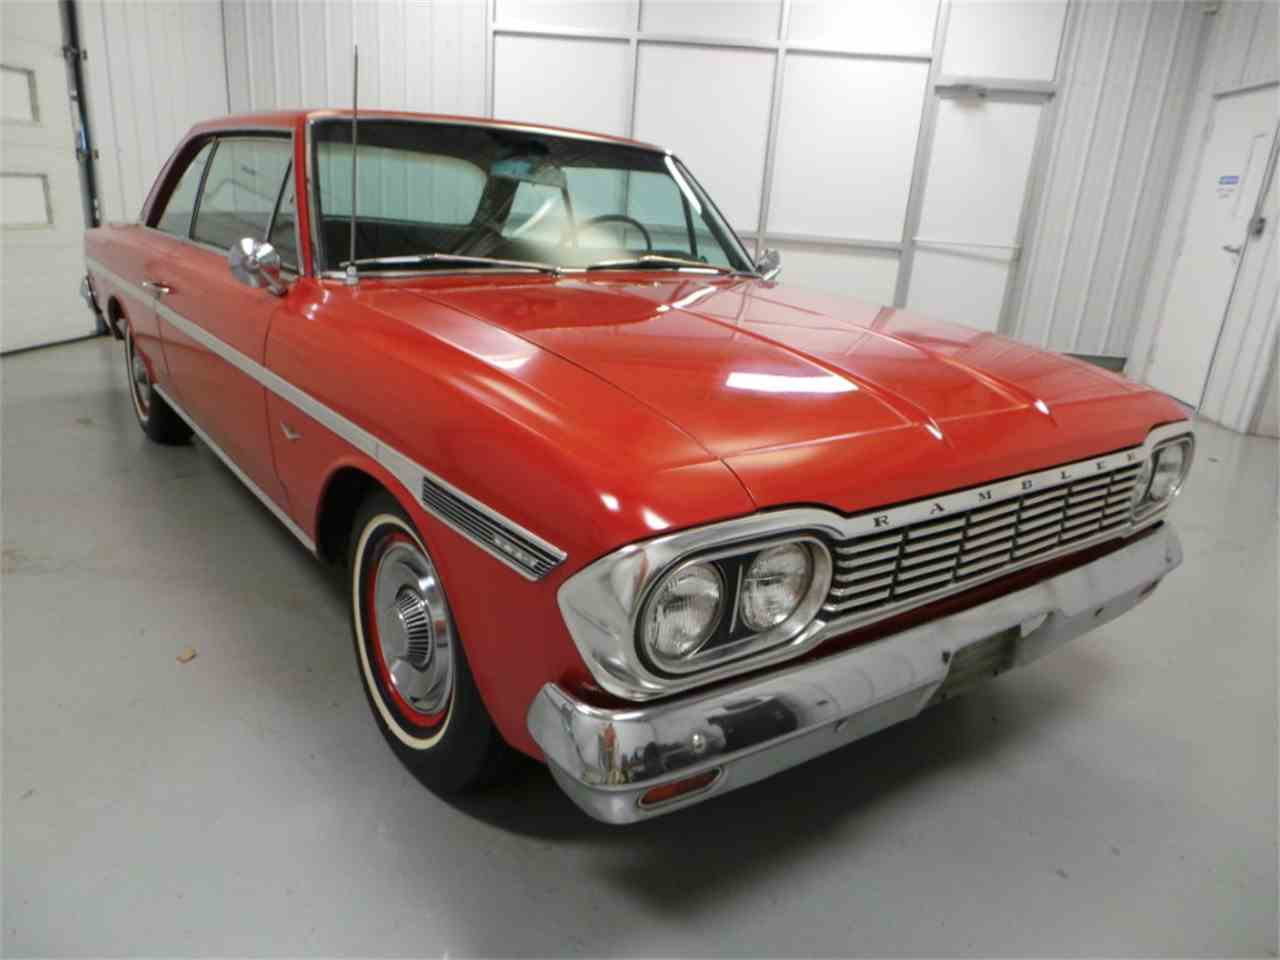 Large Picture of Classic '64 Rambler located in Christiansburg Virginia - $7,993.00 - JLAX